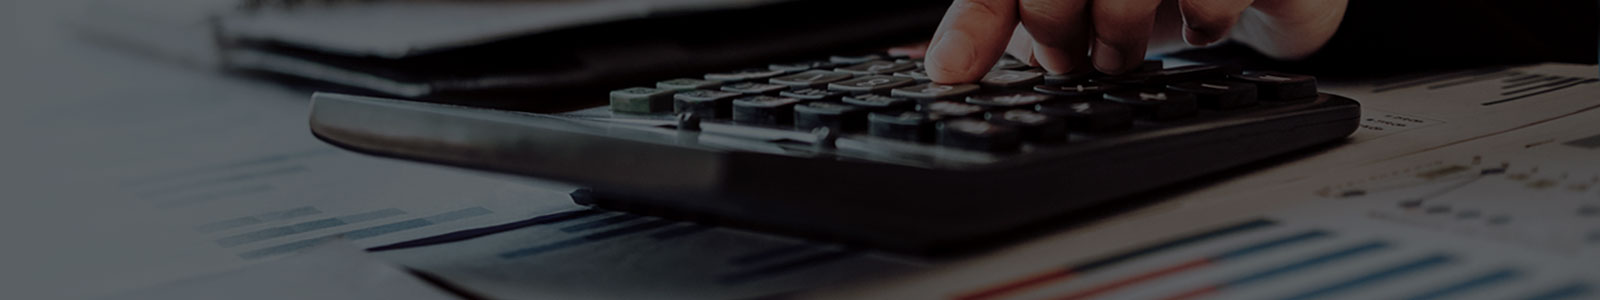 Outsourcing Accounts Receivable Aging Report Creation Services